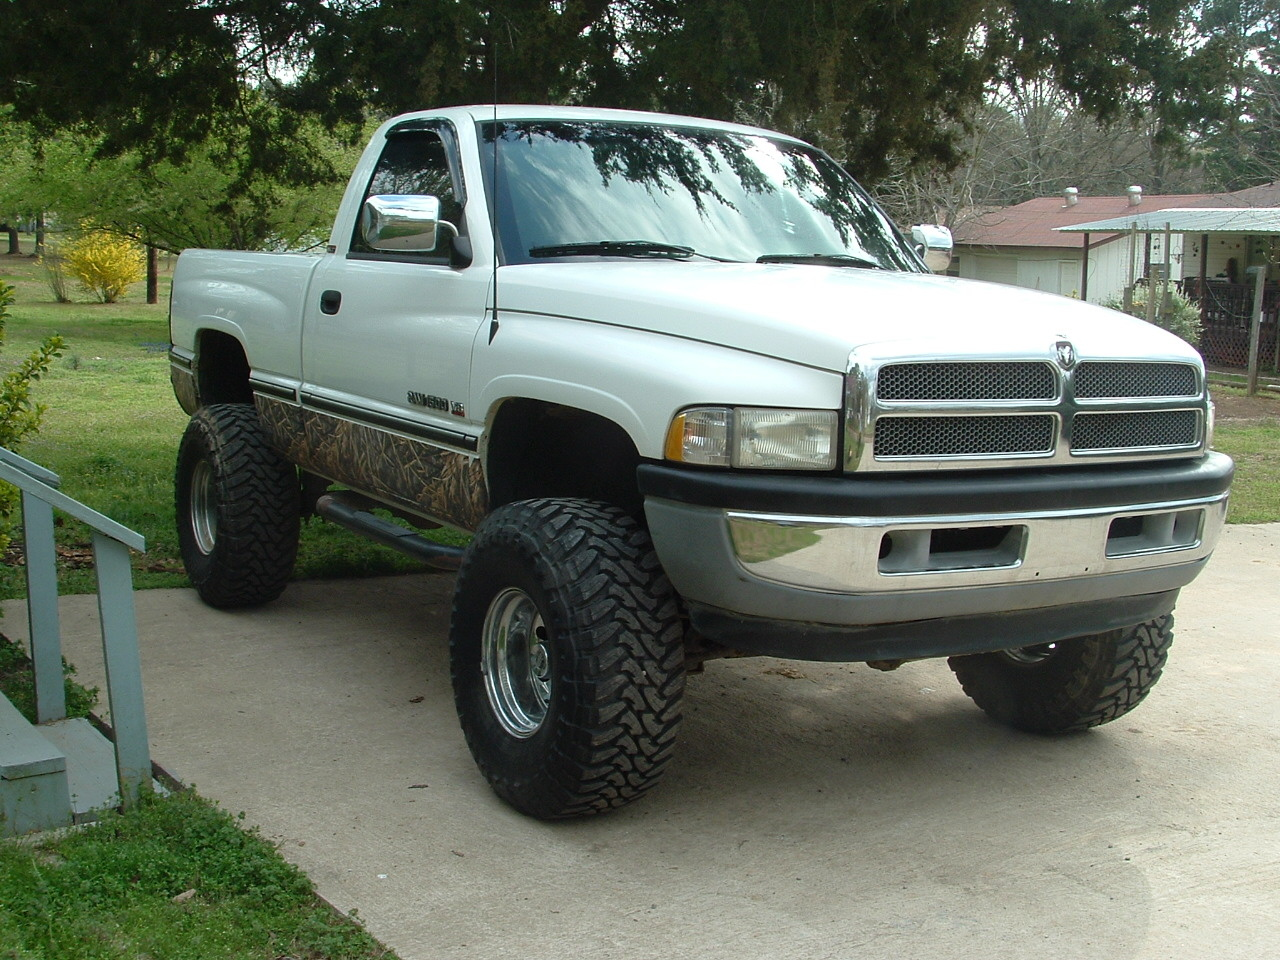 Picture of 1997 Dodge Ram 1500 LT LB 4WD, exterior, gallery_worthy